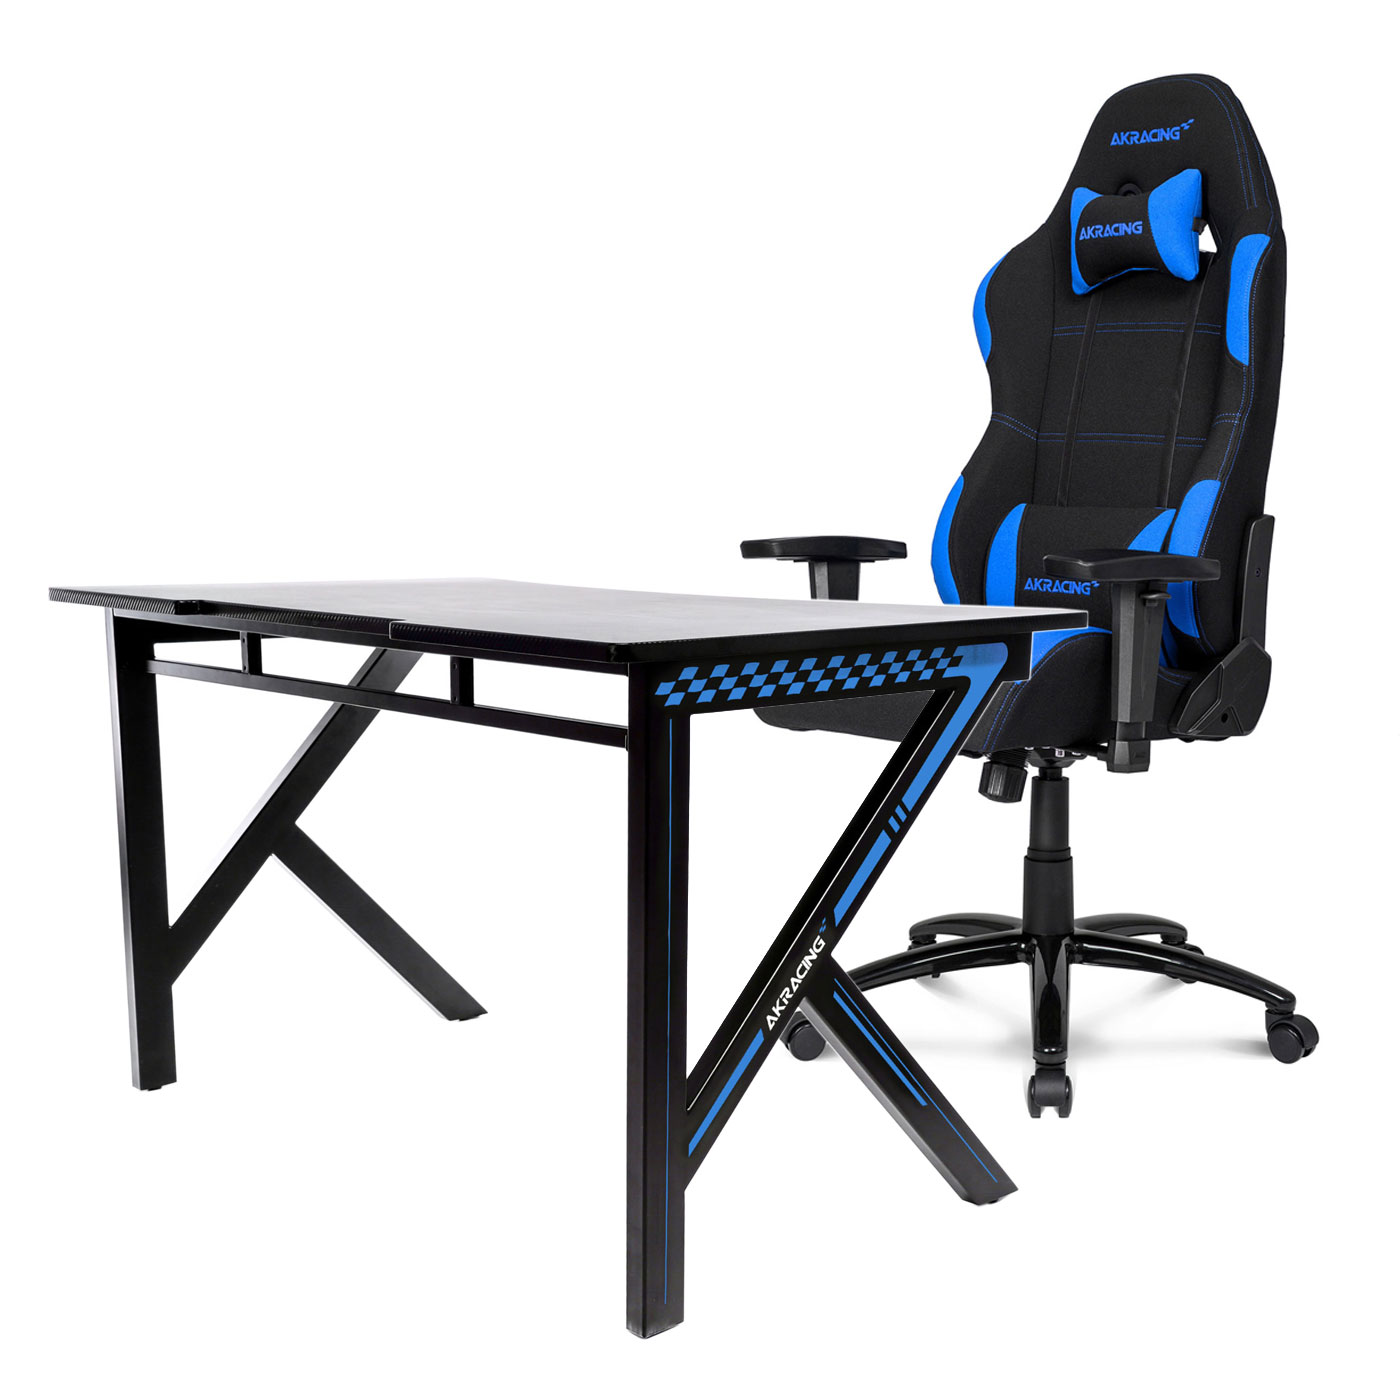 AKRacing Gaming Desk Bleu Fauteuil Gamer AKRacing Sur